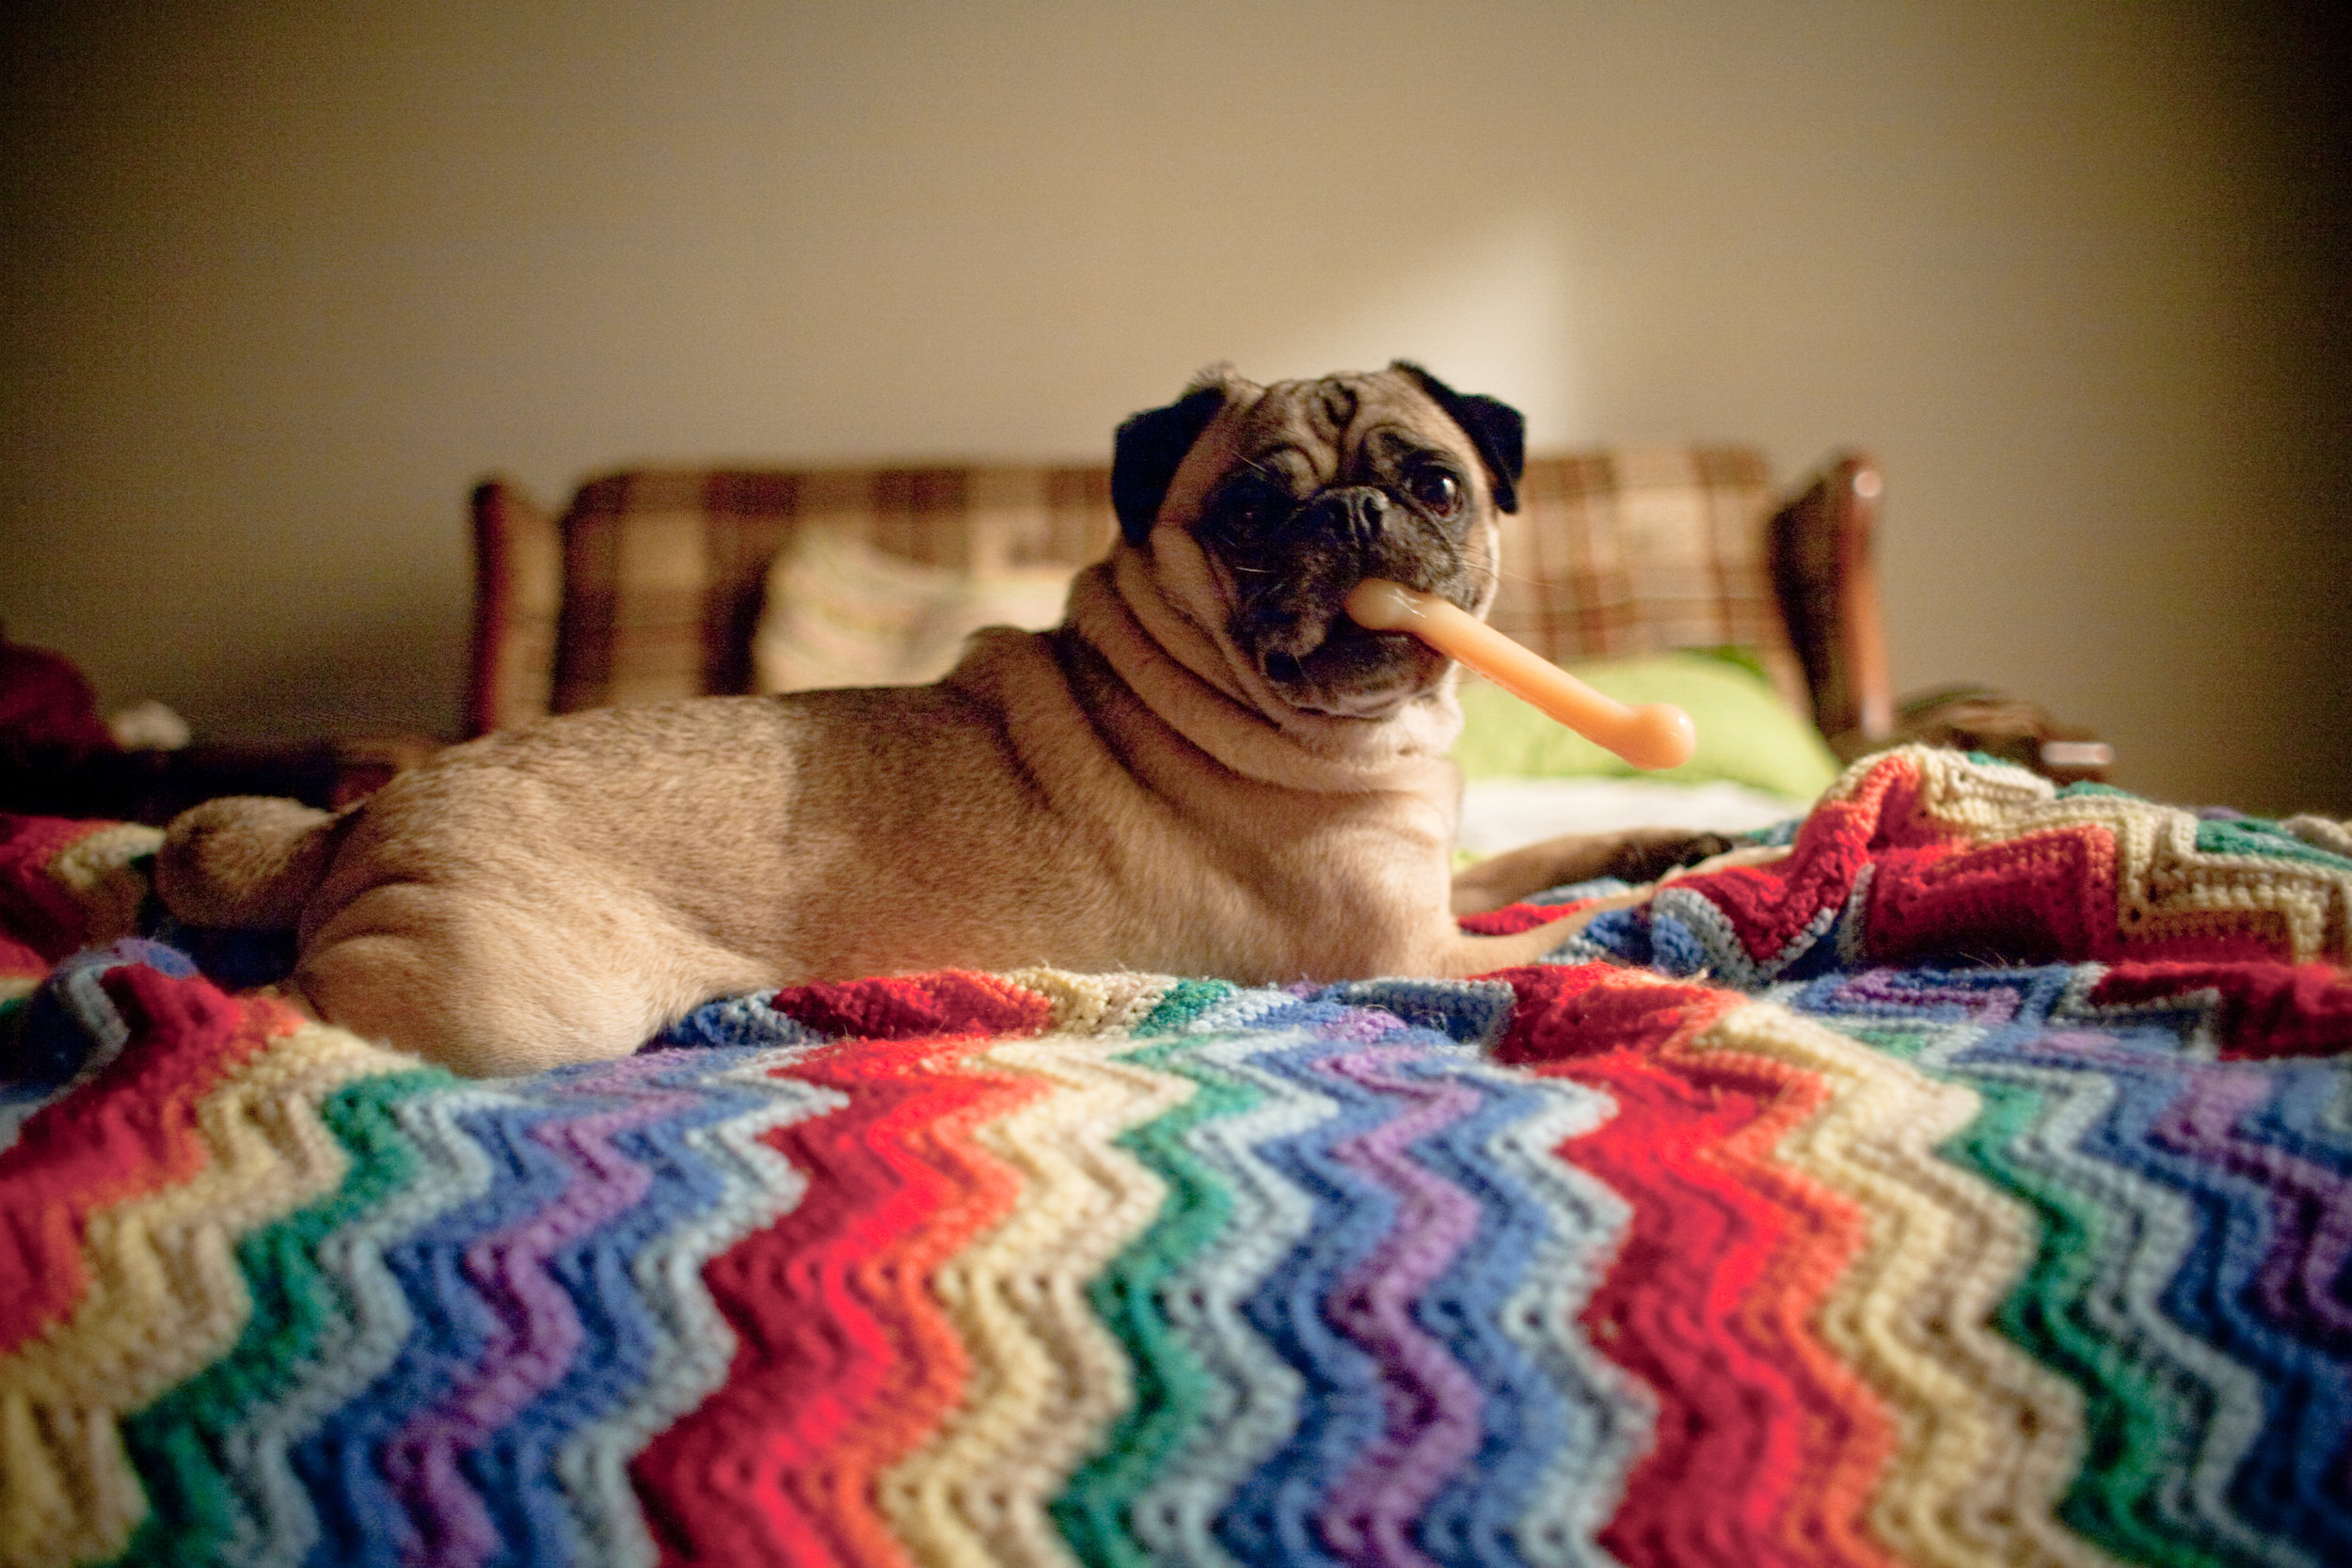 pug_on_rainbow_blanket_holding_bone_in_mouth_funny_photo